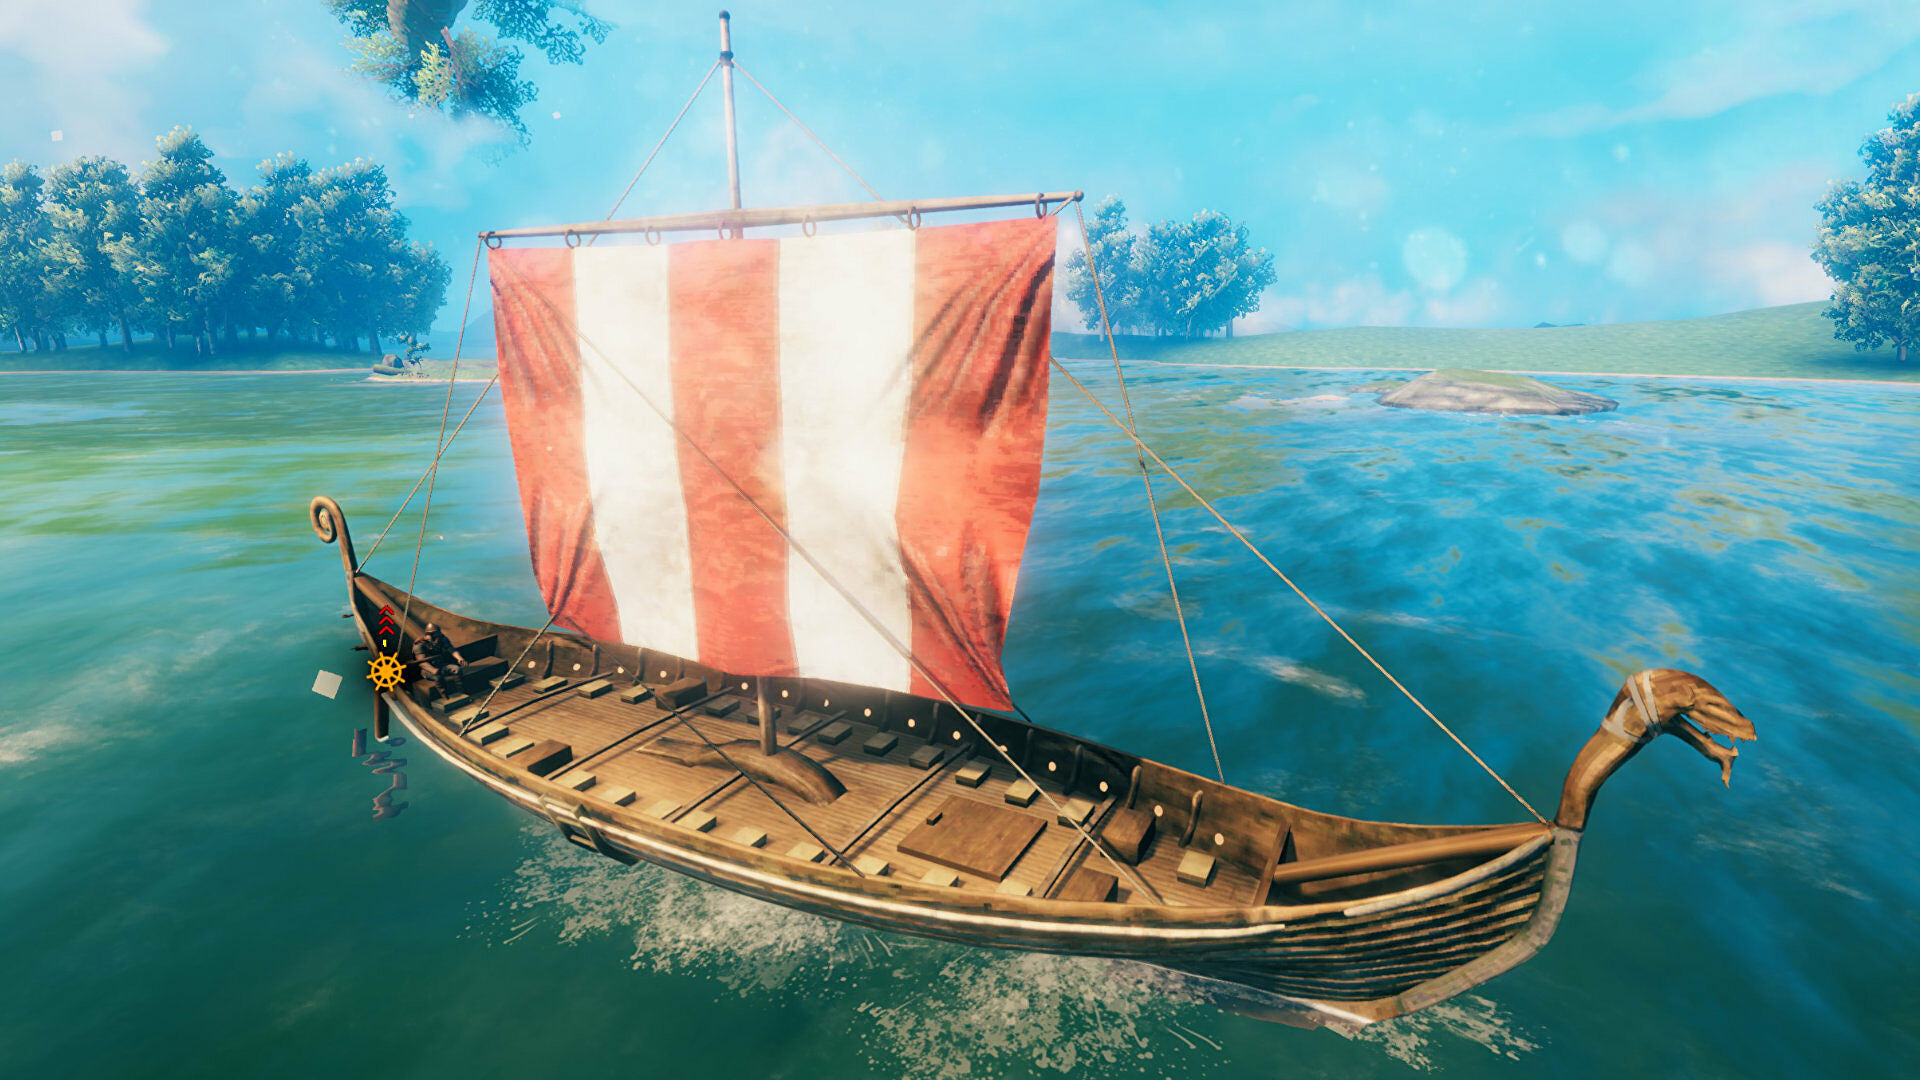 Valheim player discovers cart waterskiing because physics is a lie